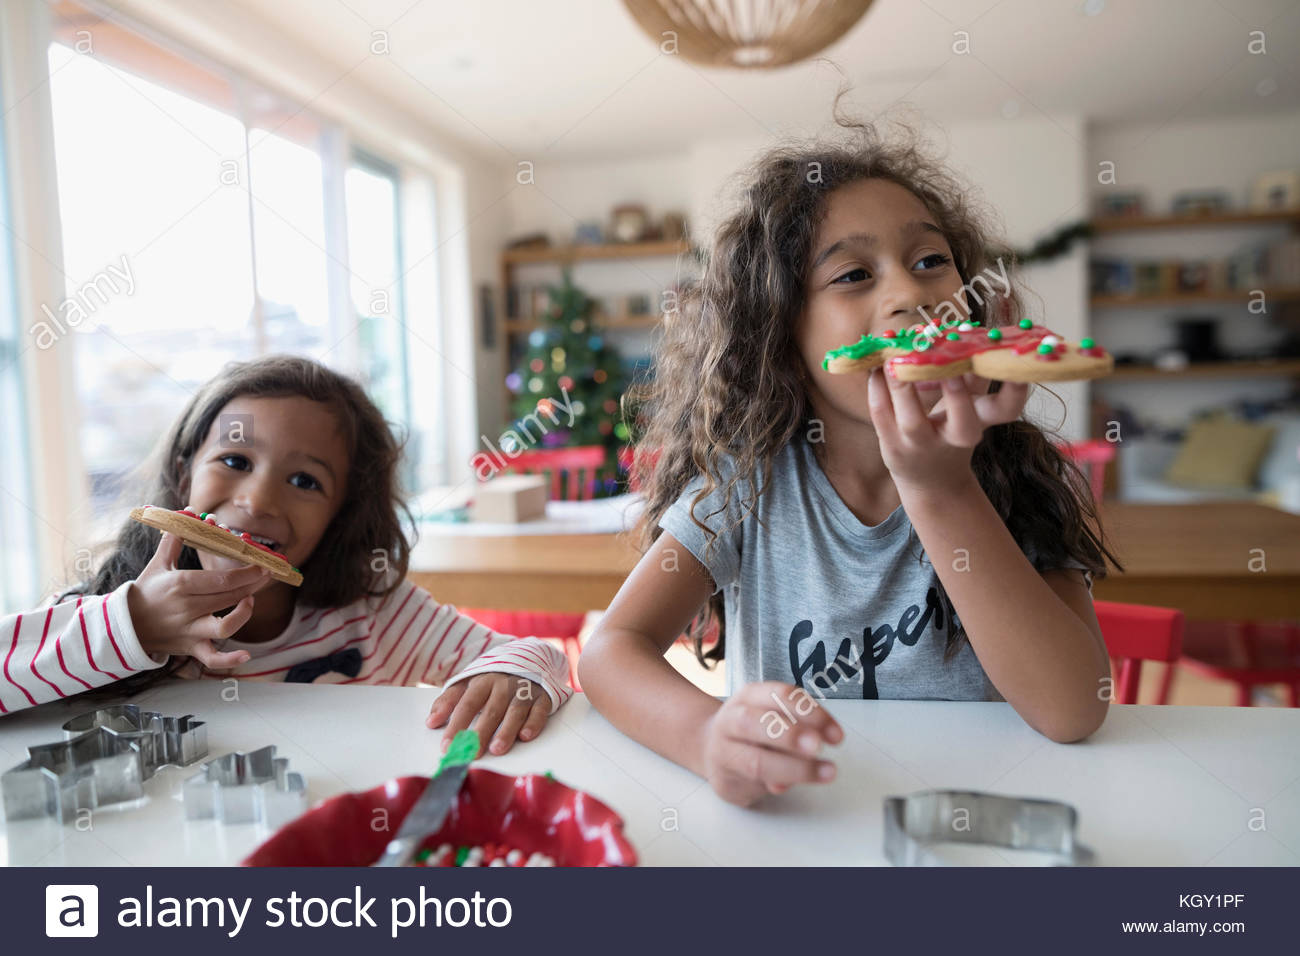 Girl sisters eating decorated Christmas gingerbread cookies in kitchen - Stock Image